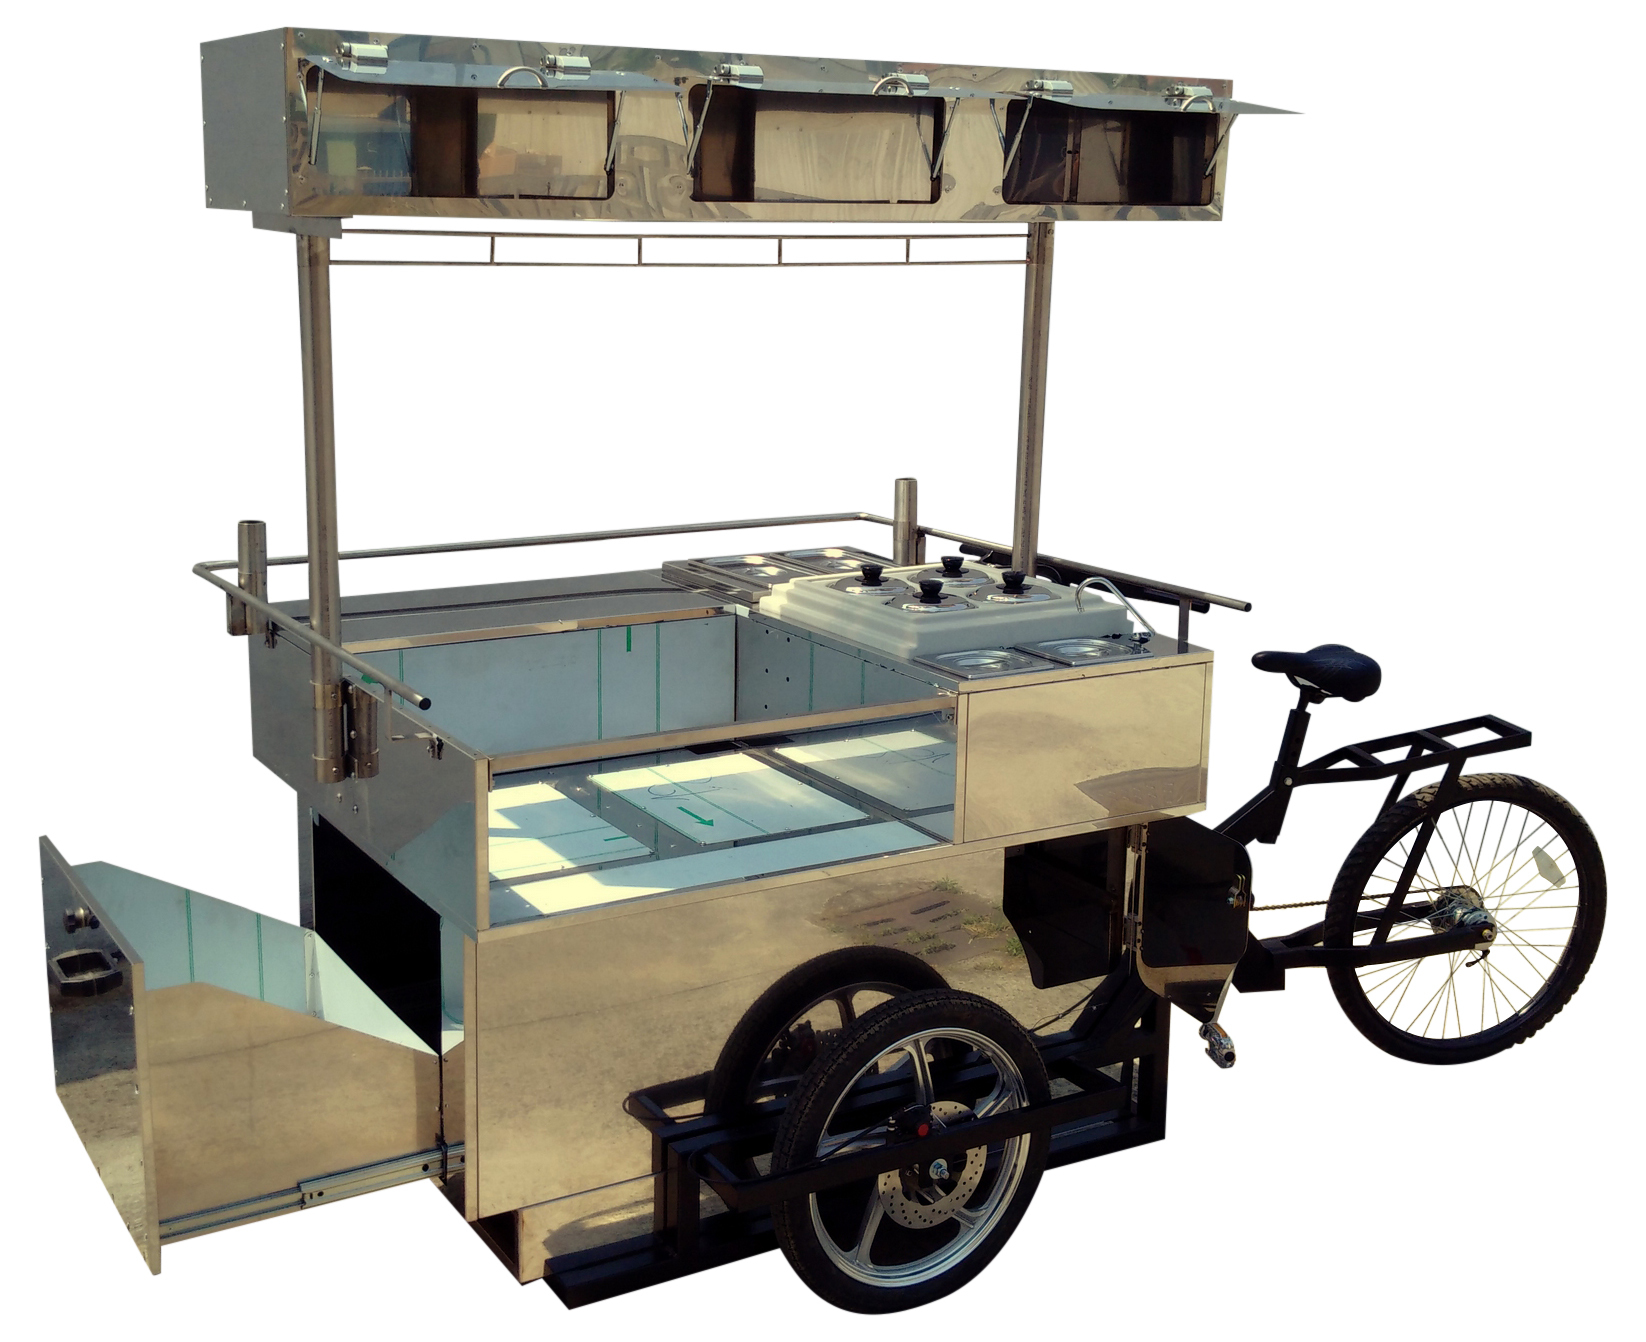 STREET_FOOD_BIKE_CHEF_PER_CUCINA_AMBULANTE_DI_STRADA_11